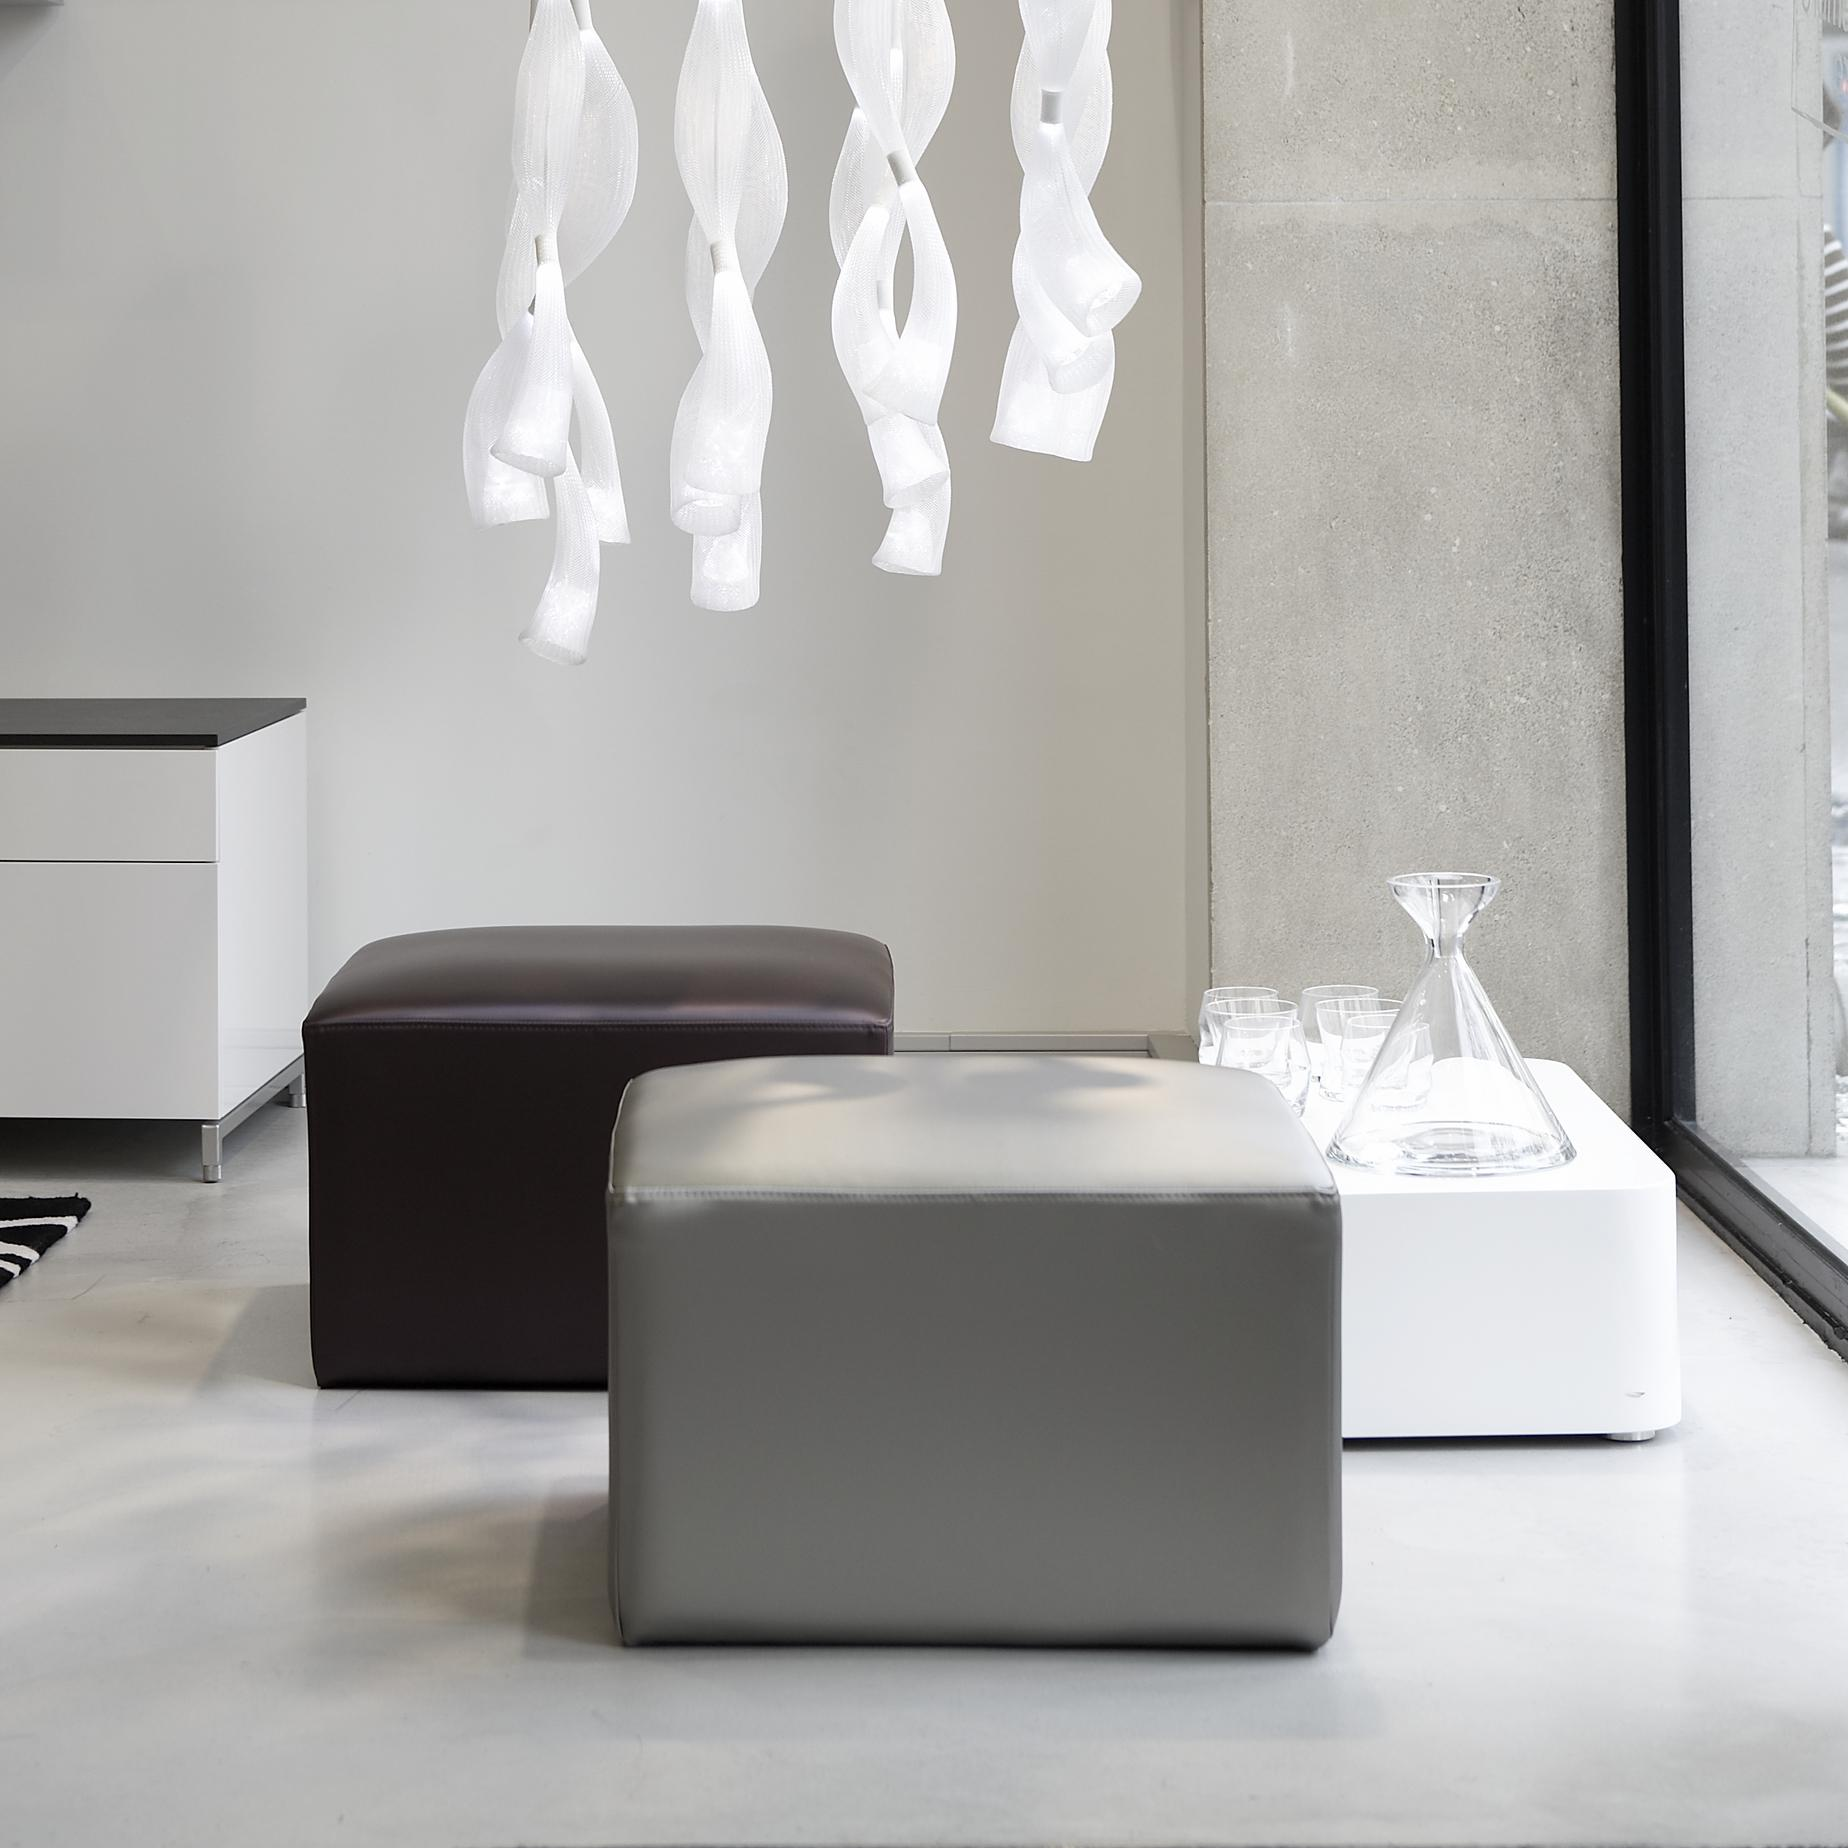 dixit armchairs from designer didier gomez ligne roset official site. Black Bedroom Furniture Sets. Home Design Ideas